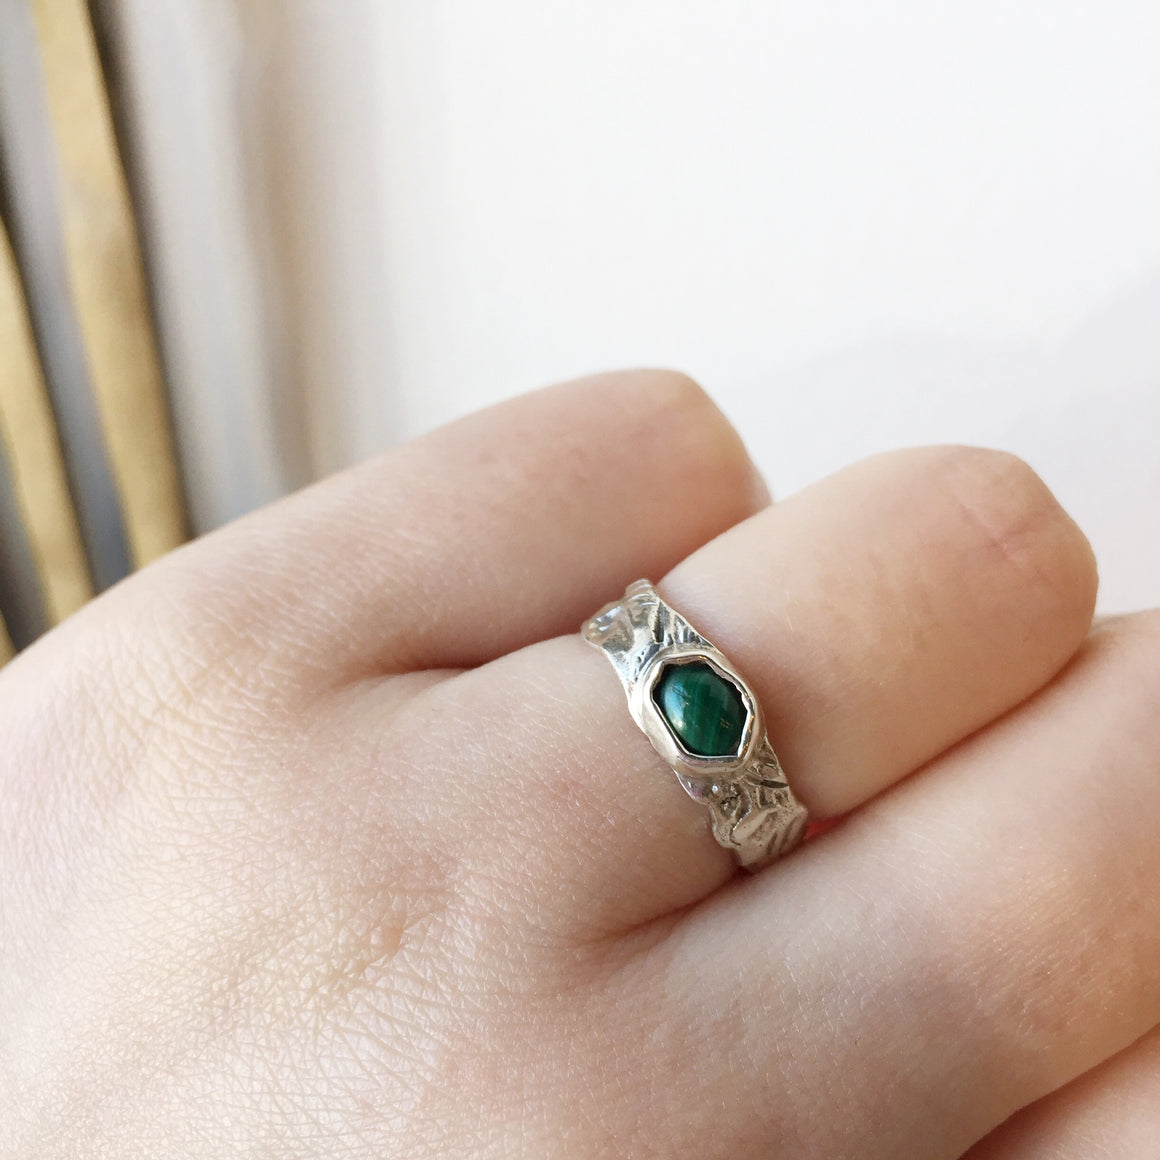 Textured Band Gemstone Ring - Malachite | LISSA BOWIE | JV Studios Boutique